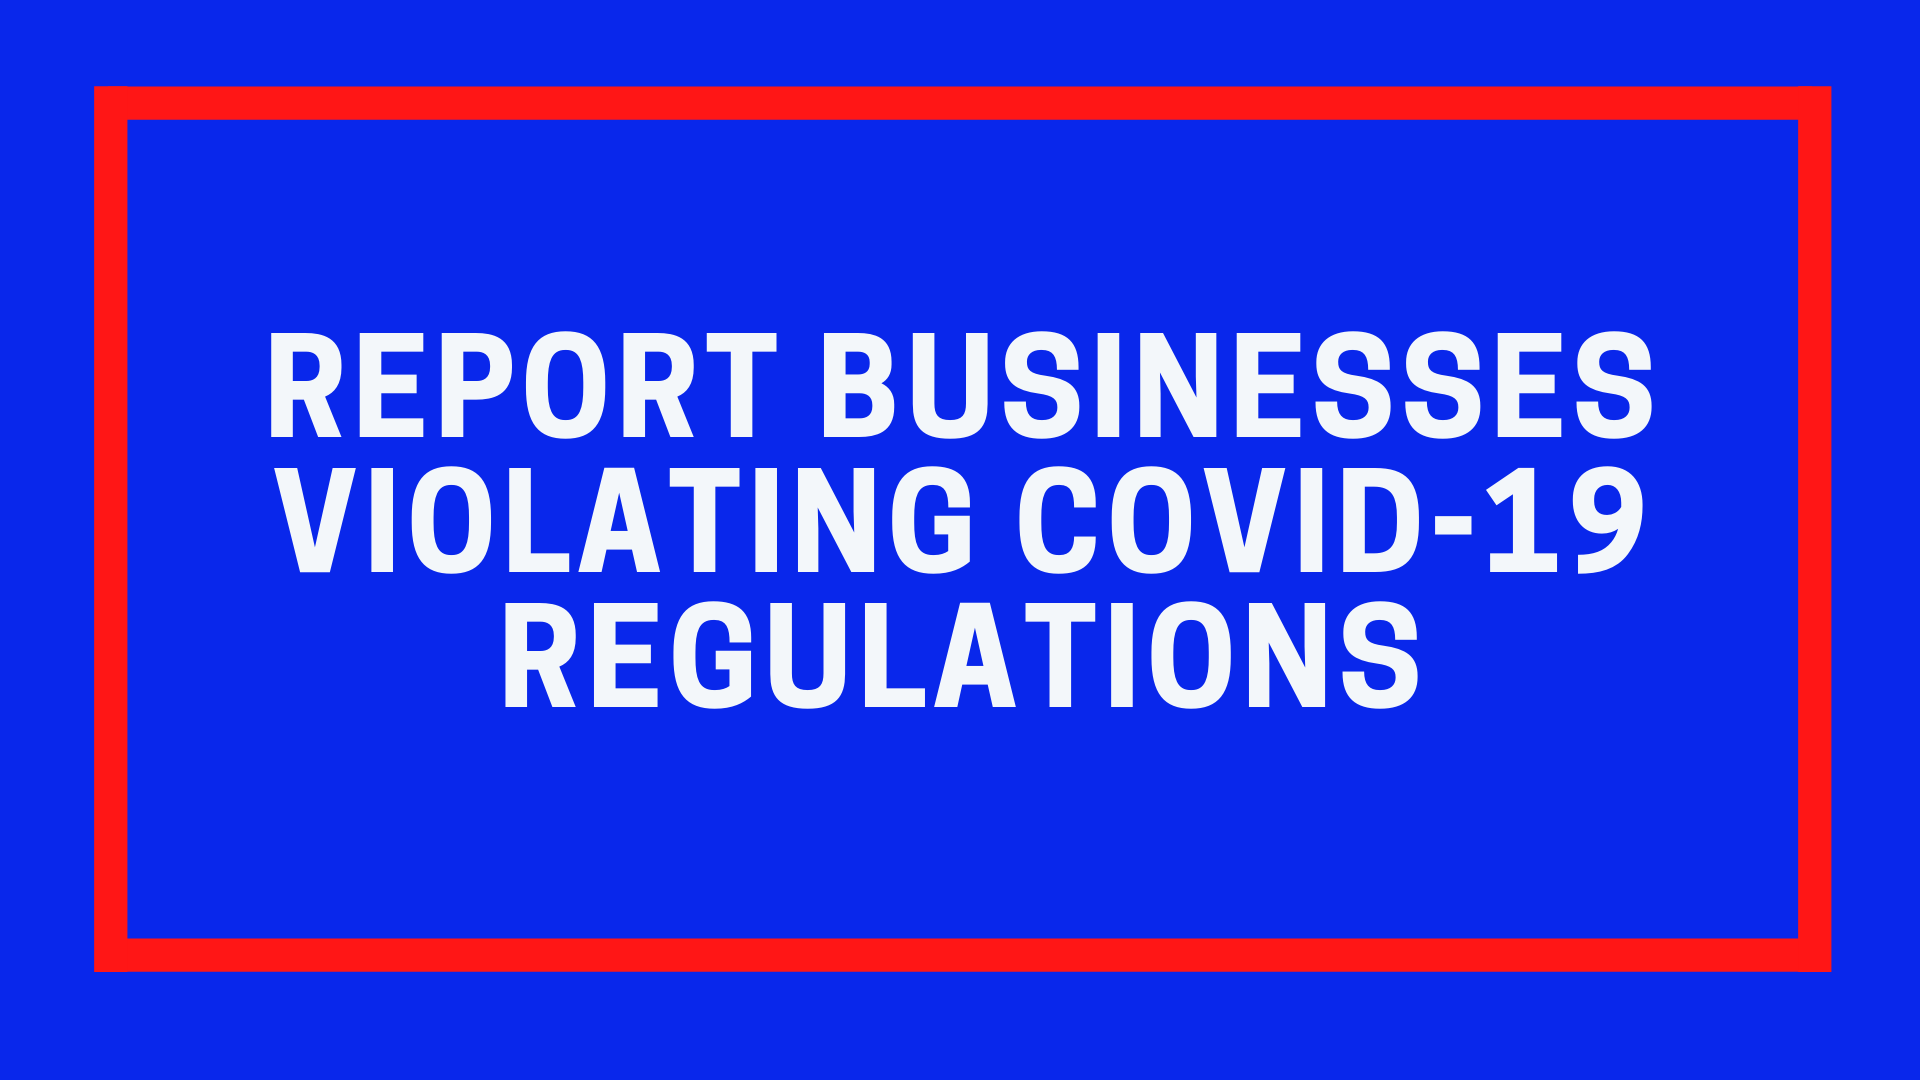 Link to Info on Reporting Businesses Violating COVID-19 Regulations